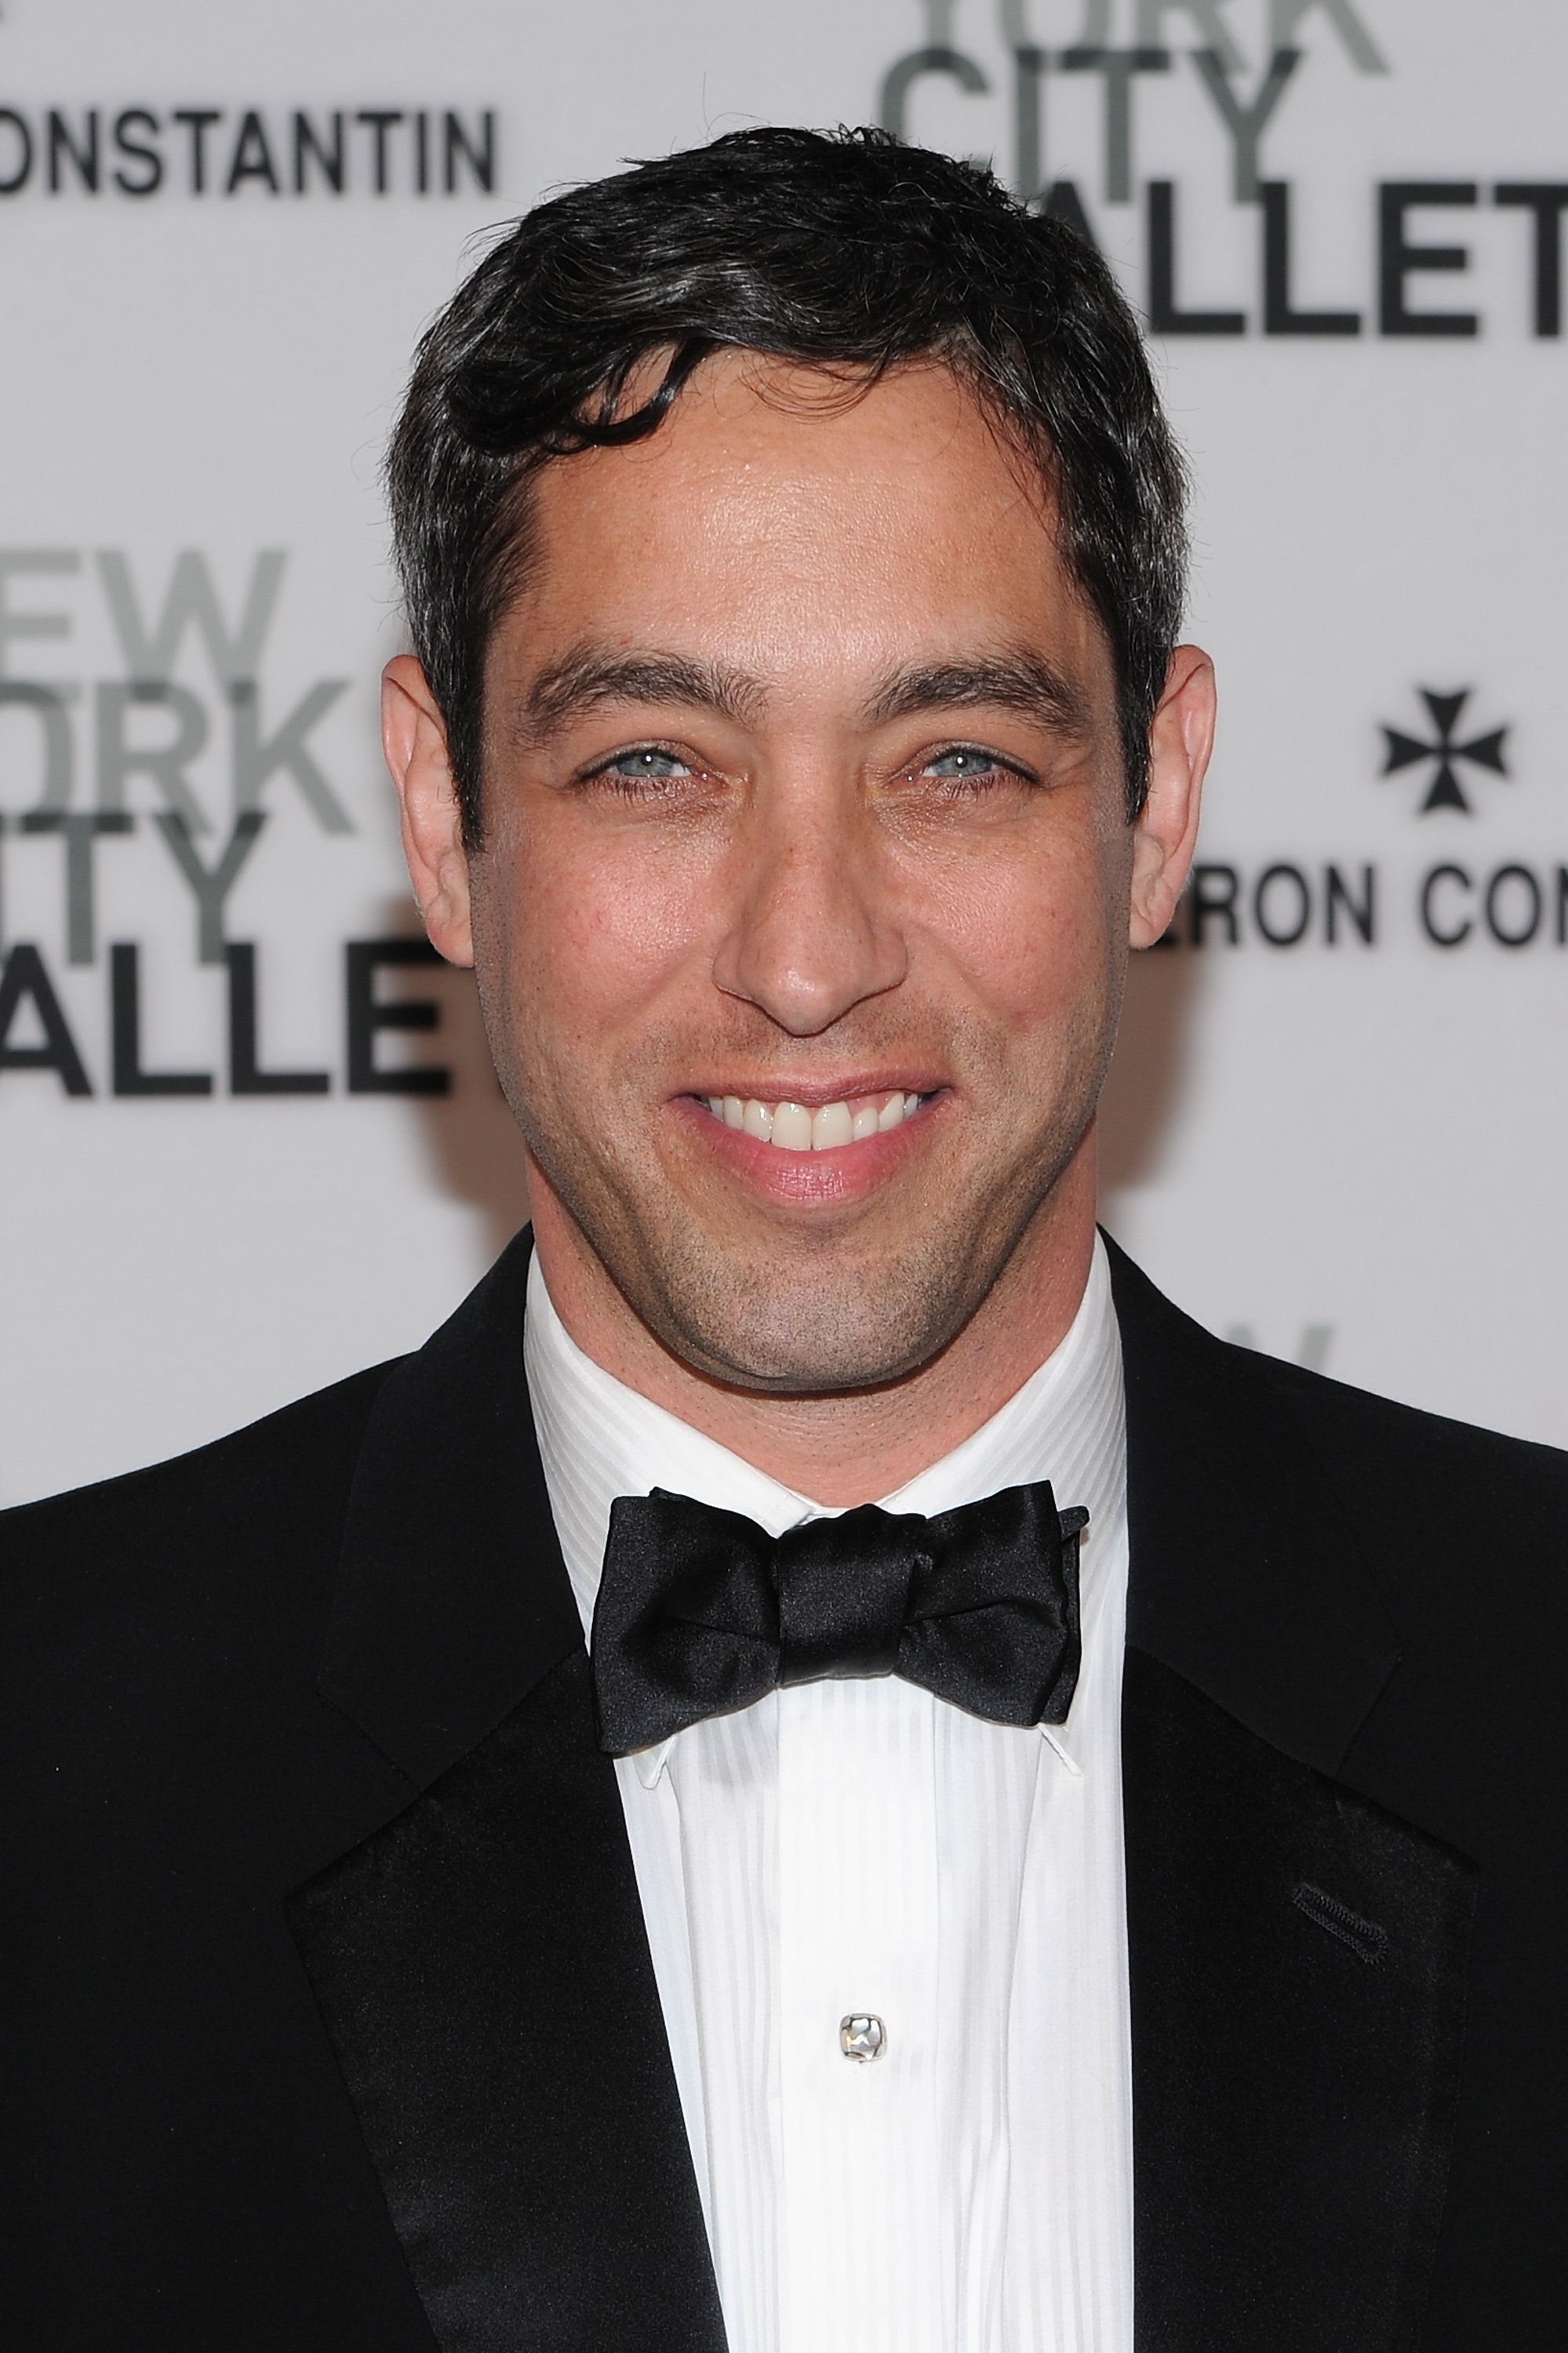 NEW YORK, NY - MAY 07:  Nick Loeb attends the New York City Ballet 2015 Spring Gala at David H. Koch Theater, Lincoln Center on May 7, 2015 in New York City.  (Photo by Andrew Toth/FilmMagic)